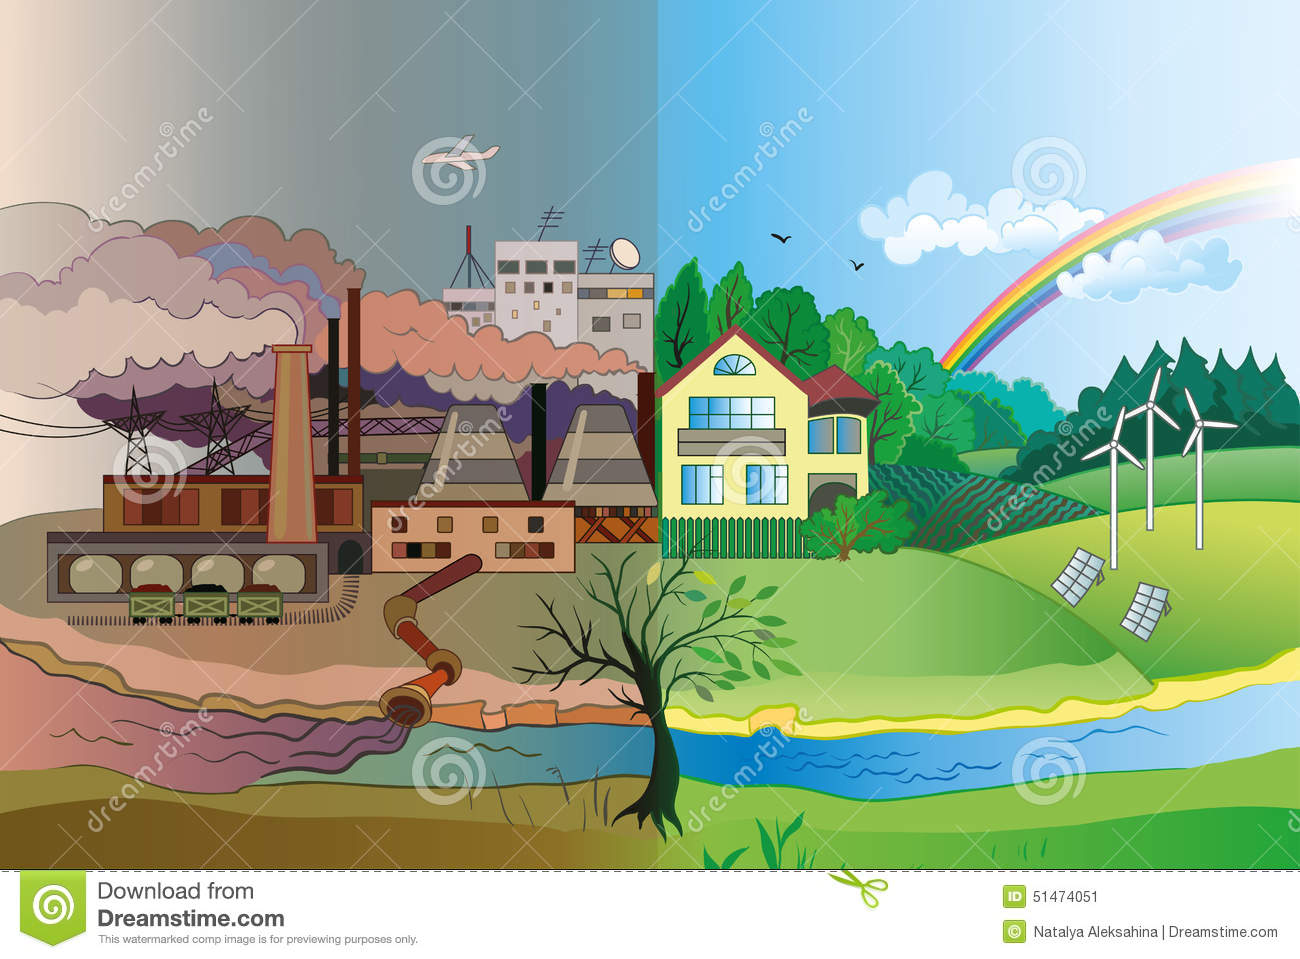 identify an example of a natural source of pollution